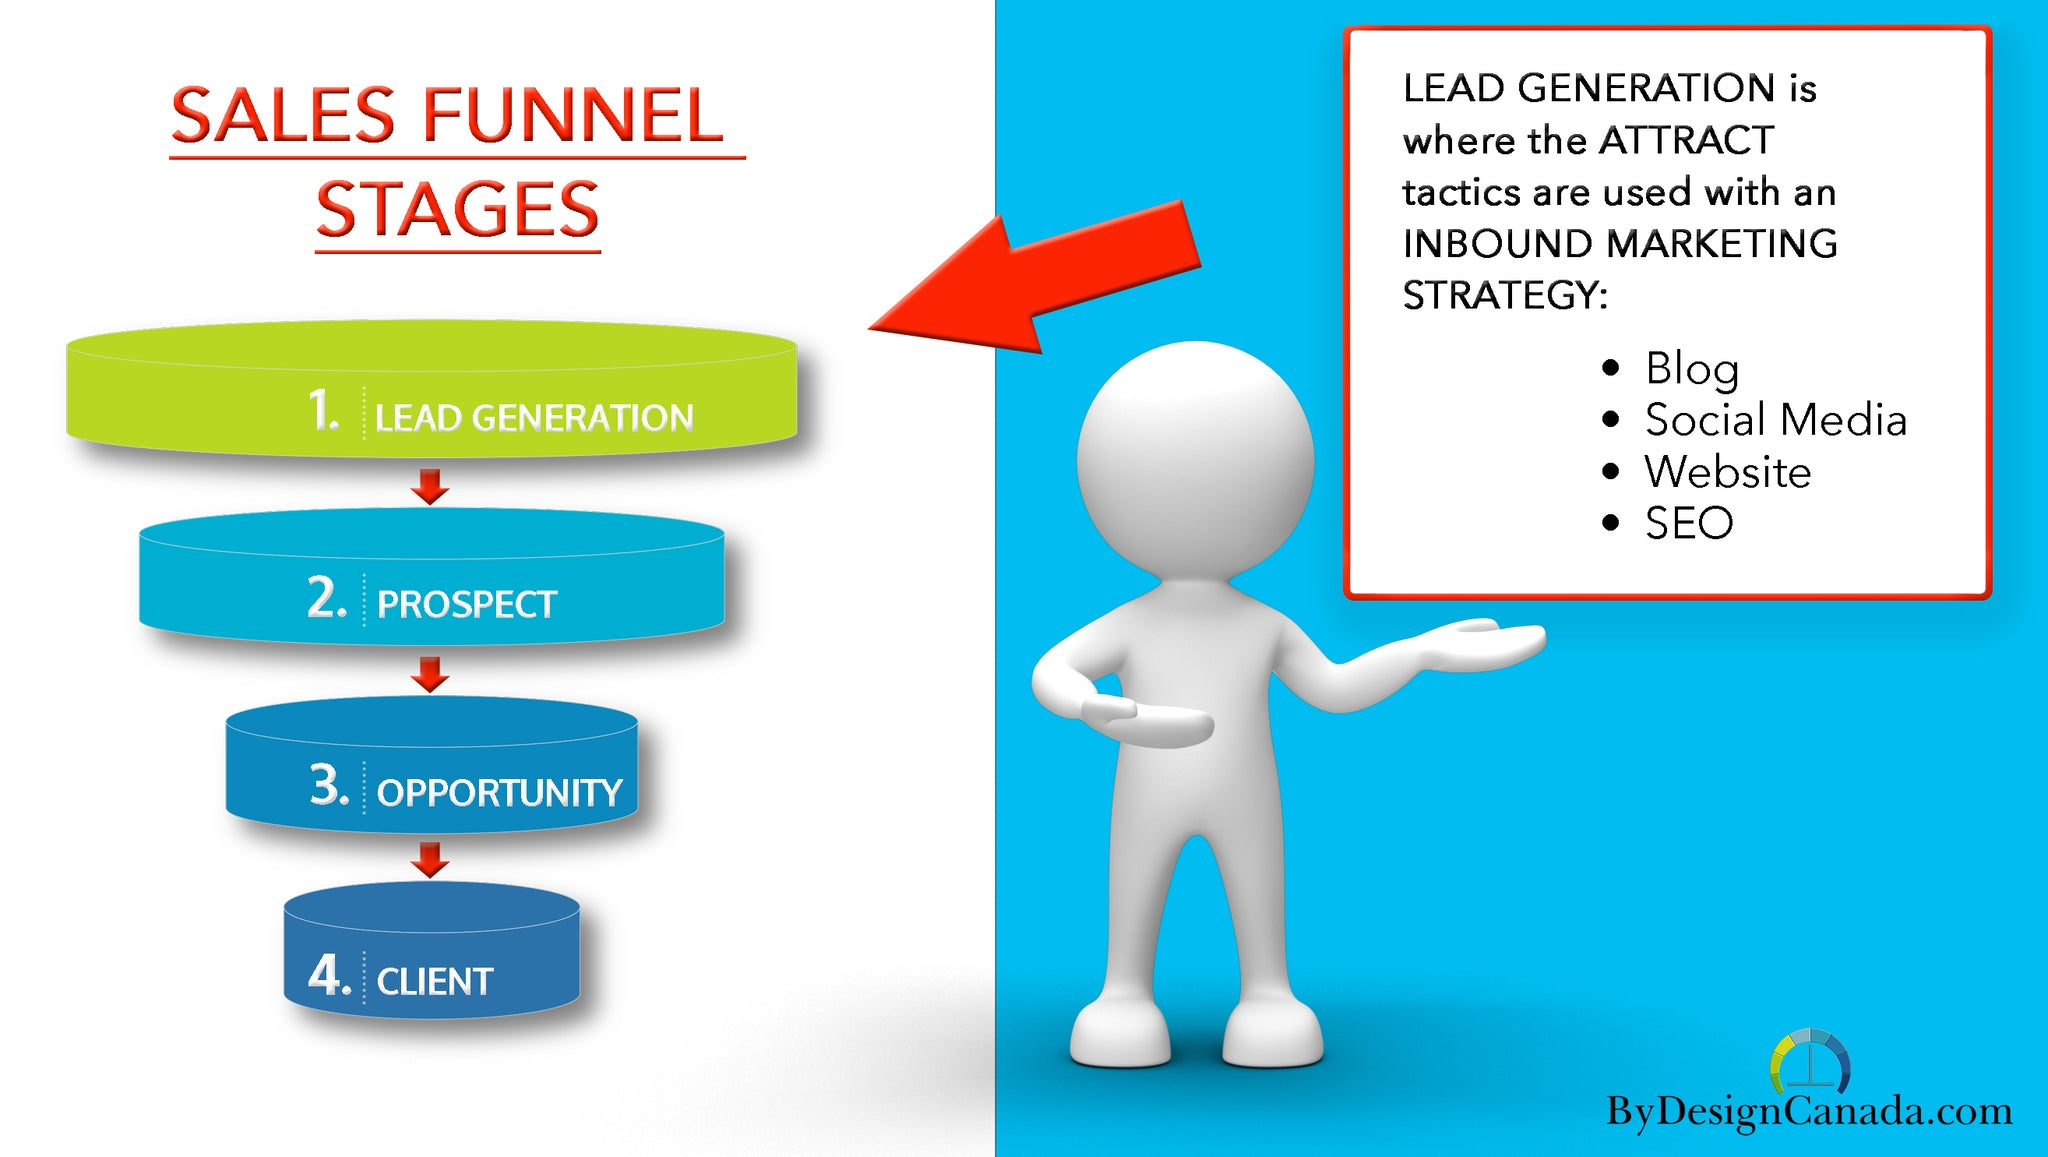 SALES FUNNEL INFOGRAPHIC FOR ATTRACT STAGE INBOUND MARKETING STRATEGY